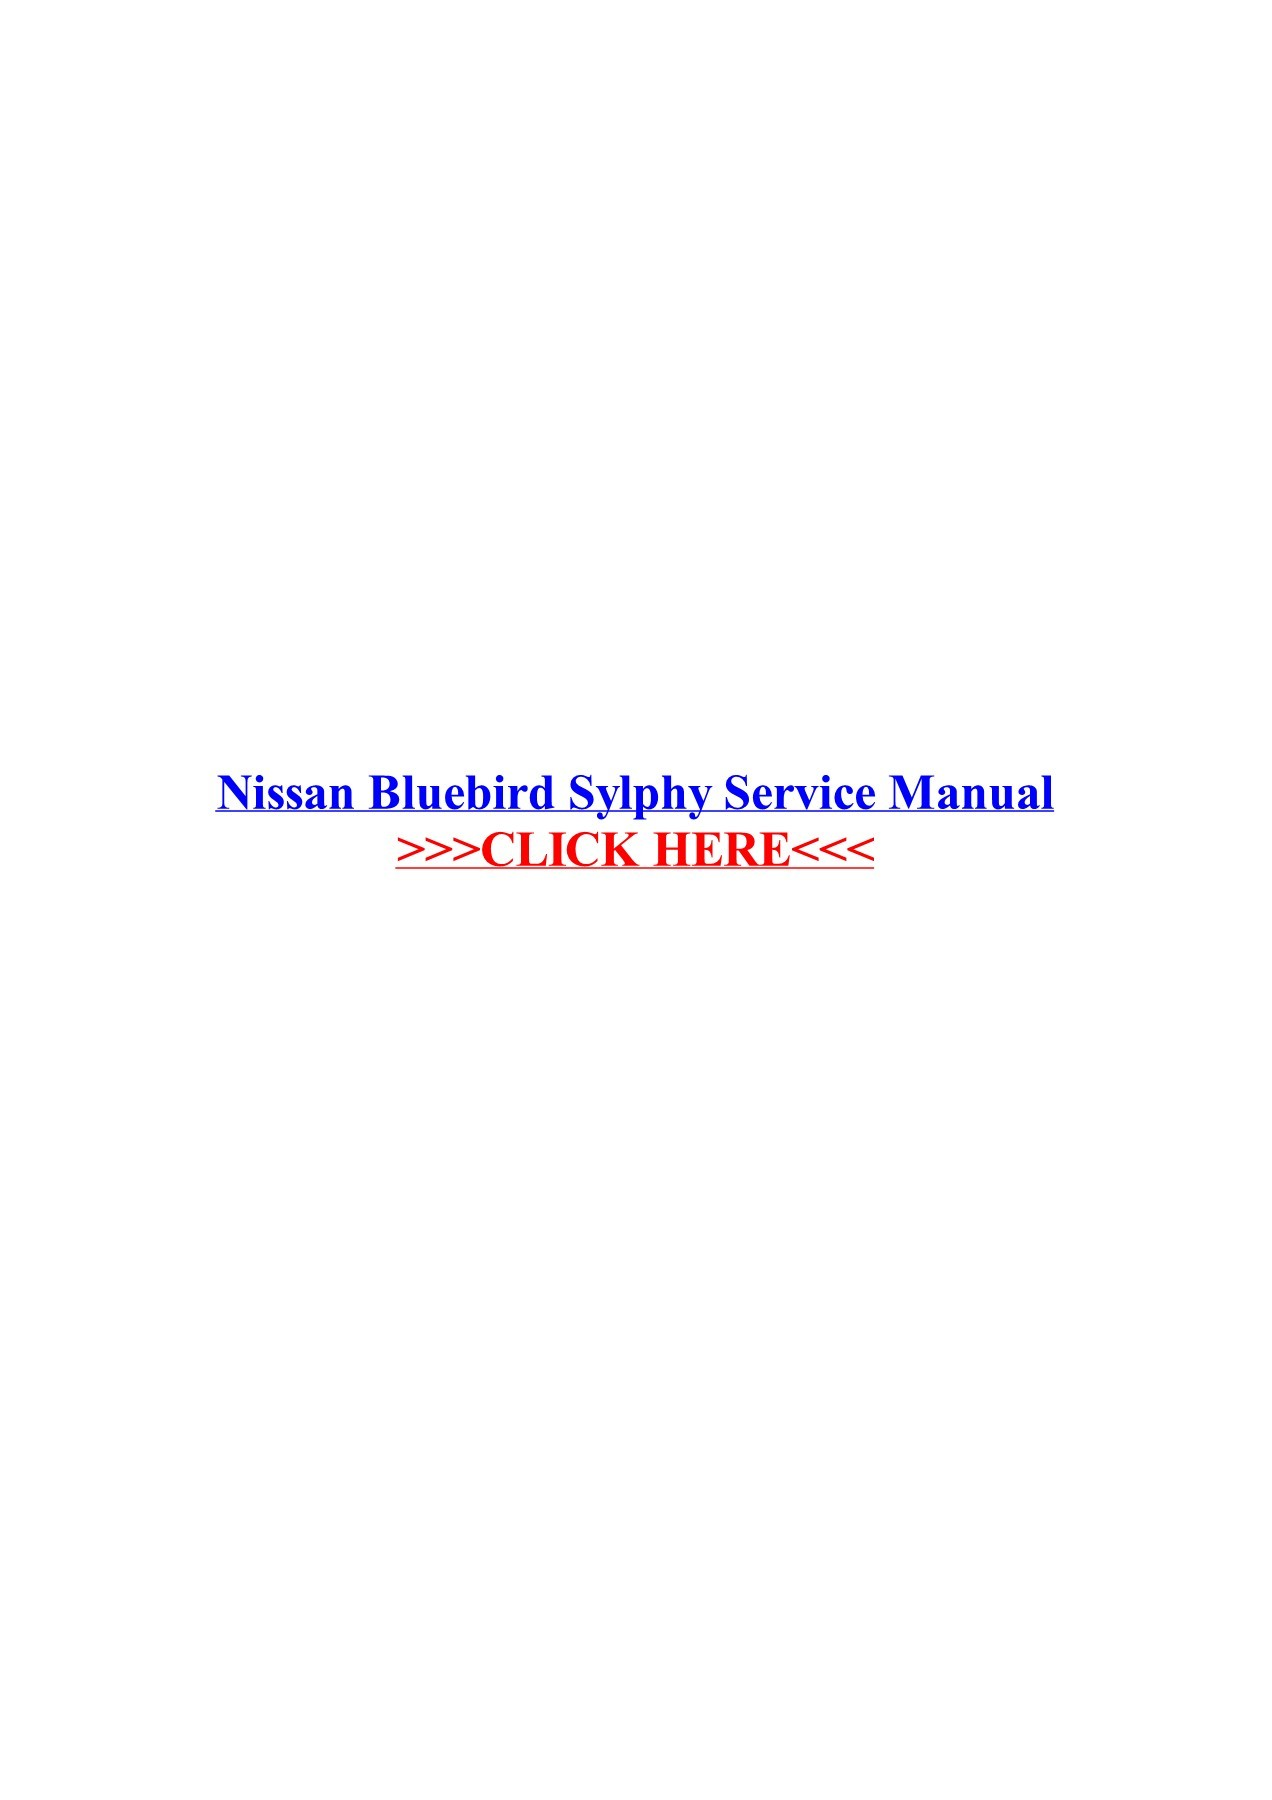 Amazing Nissan Bluebird Sylphy Service Manual Wordpress Com Pages 1 3 Wiring Cloud Filiciilluminateatxorg